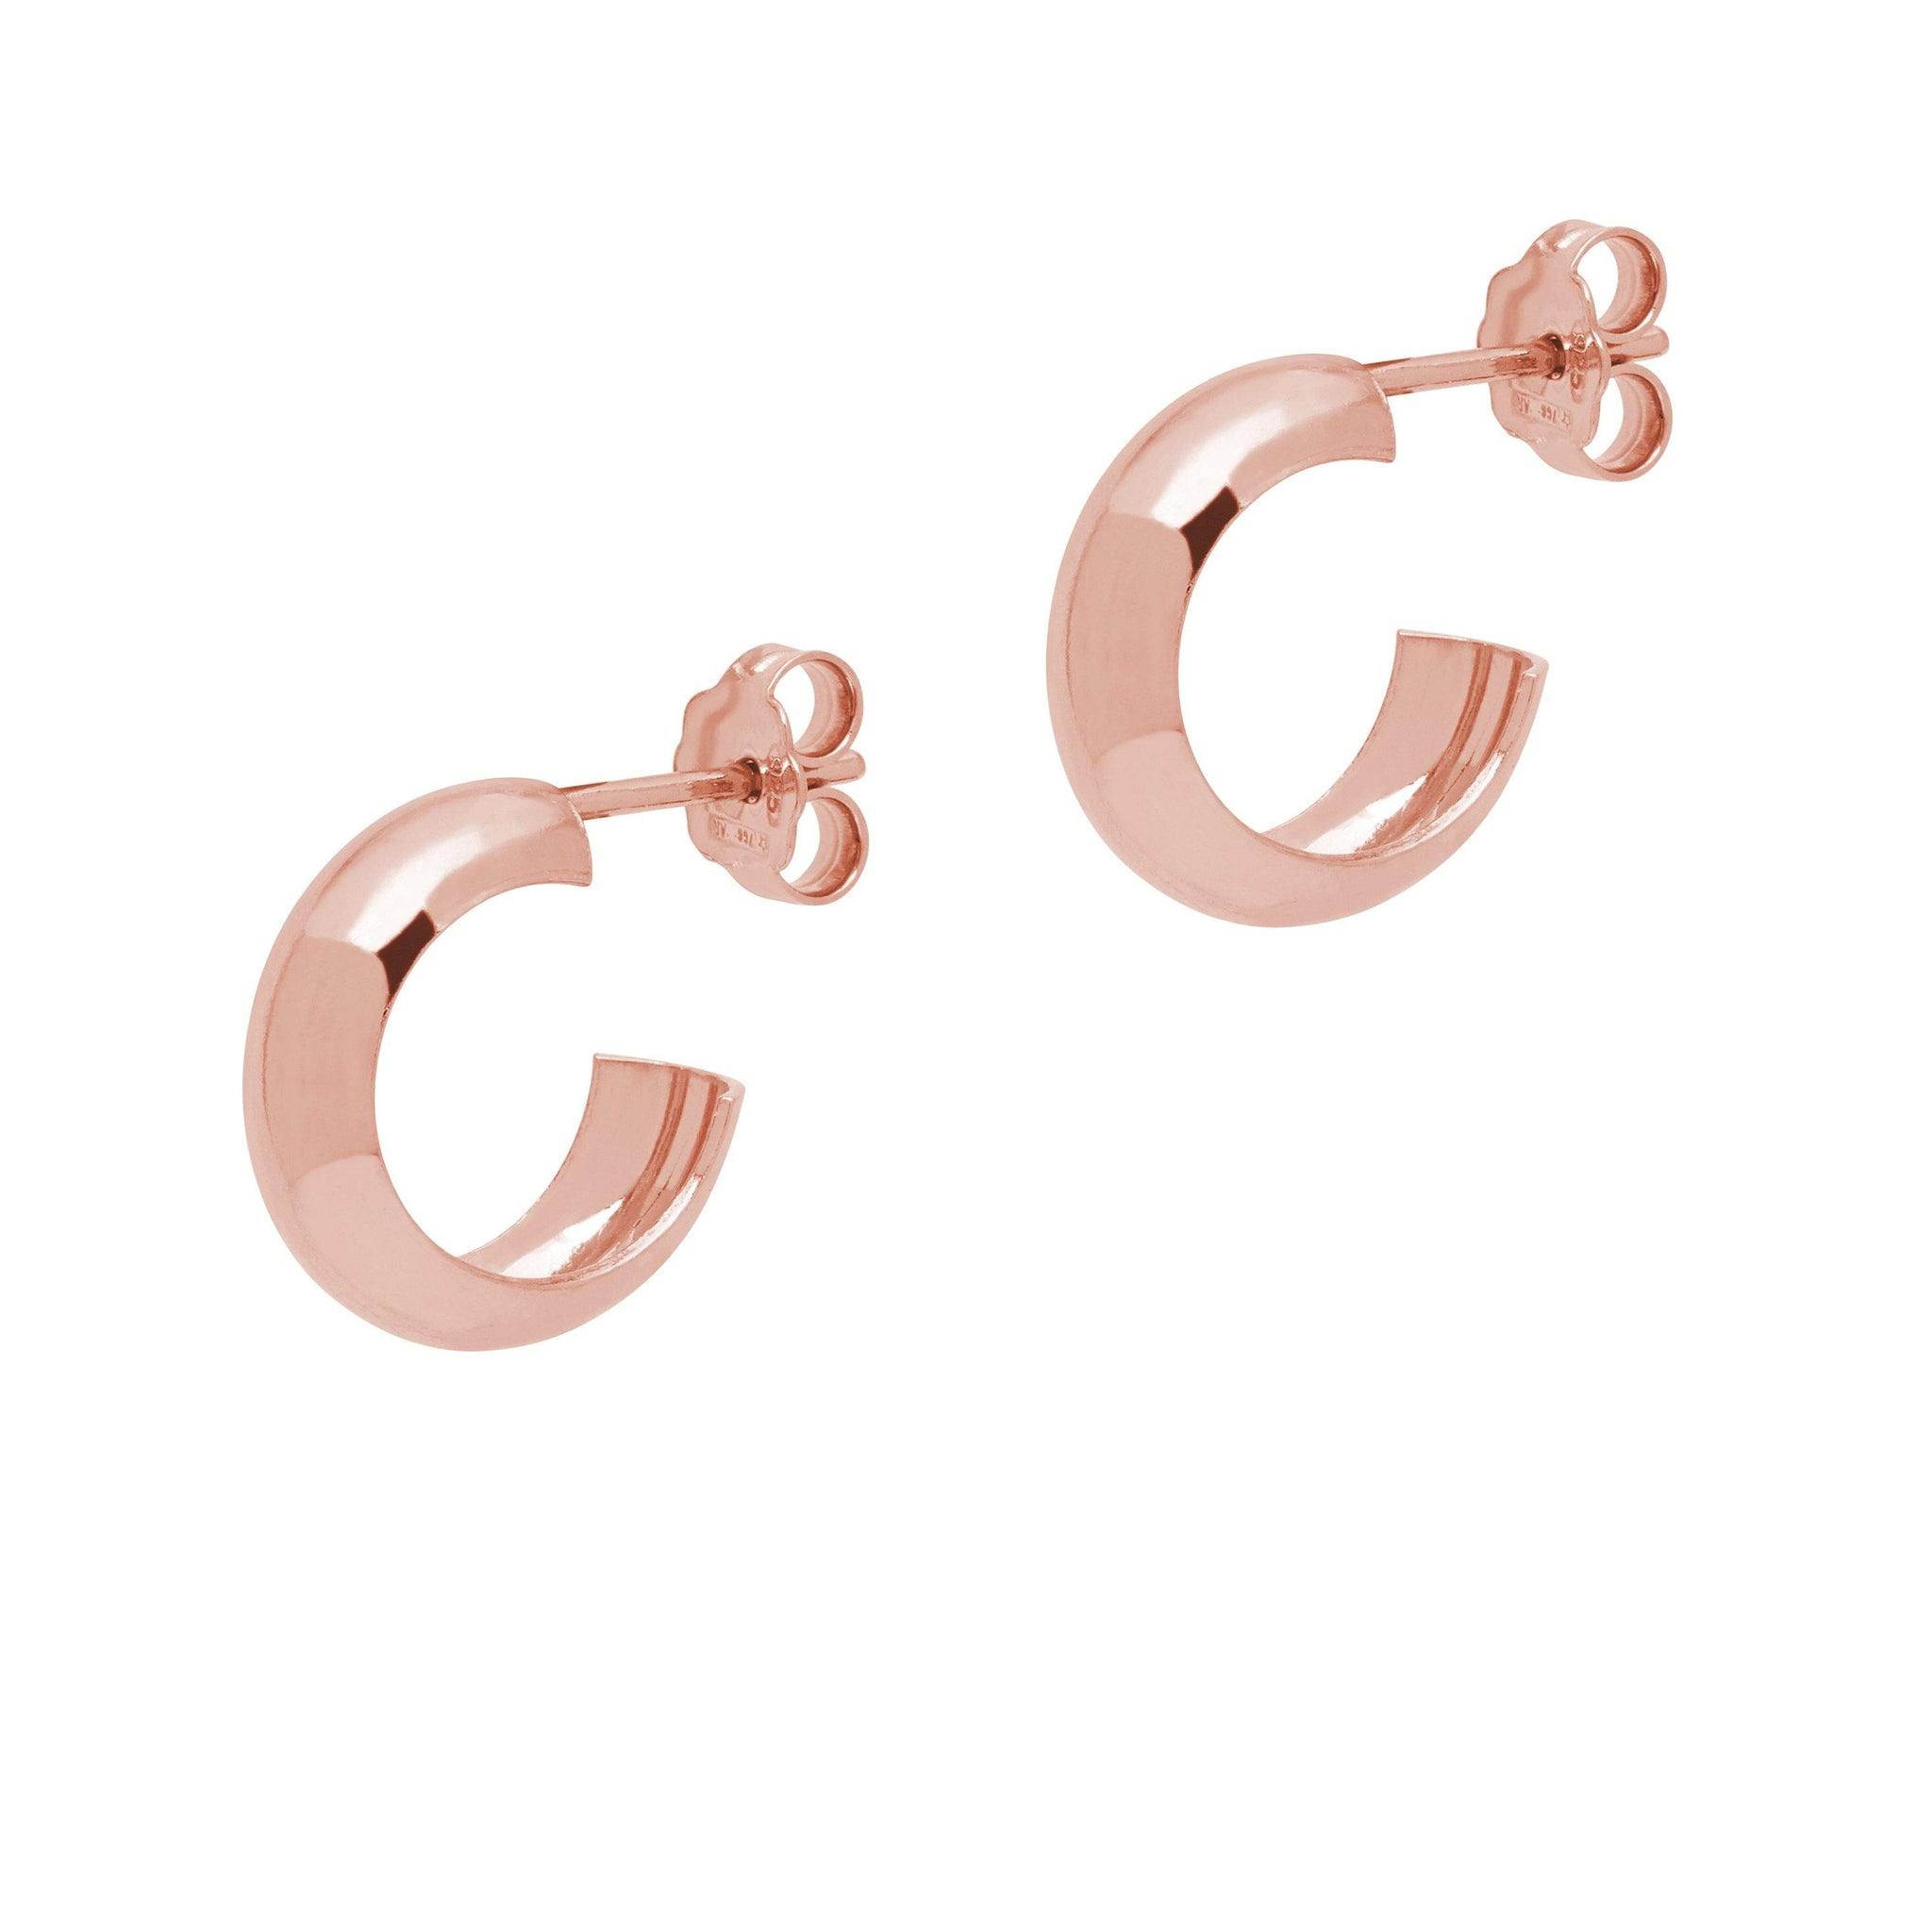 La CURVA Huggies - Rosegold - The Hoop Station 925 Sterling Silver Hoop Earrings Gold Huggies